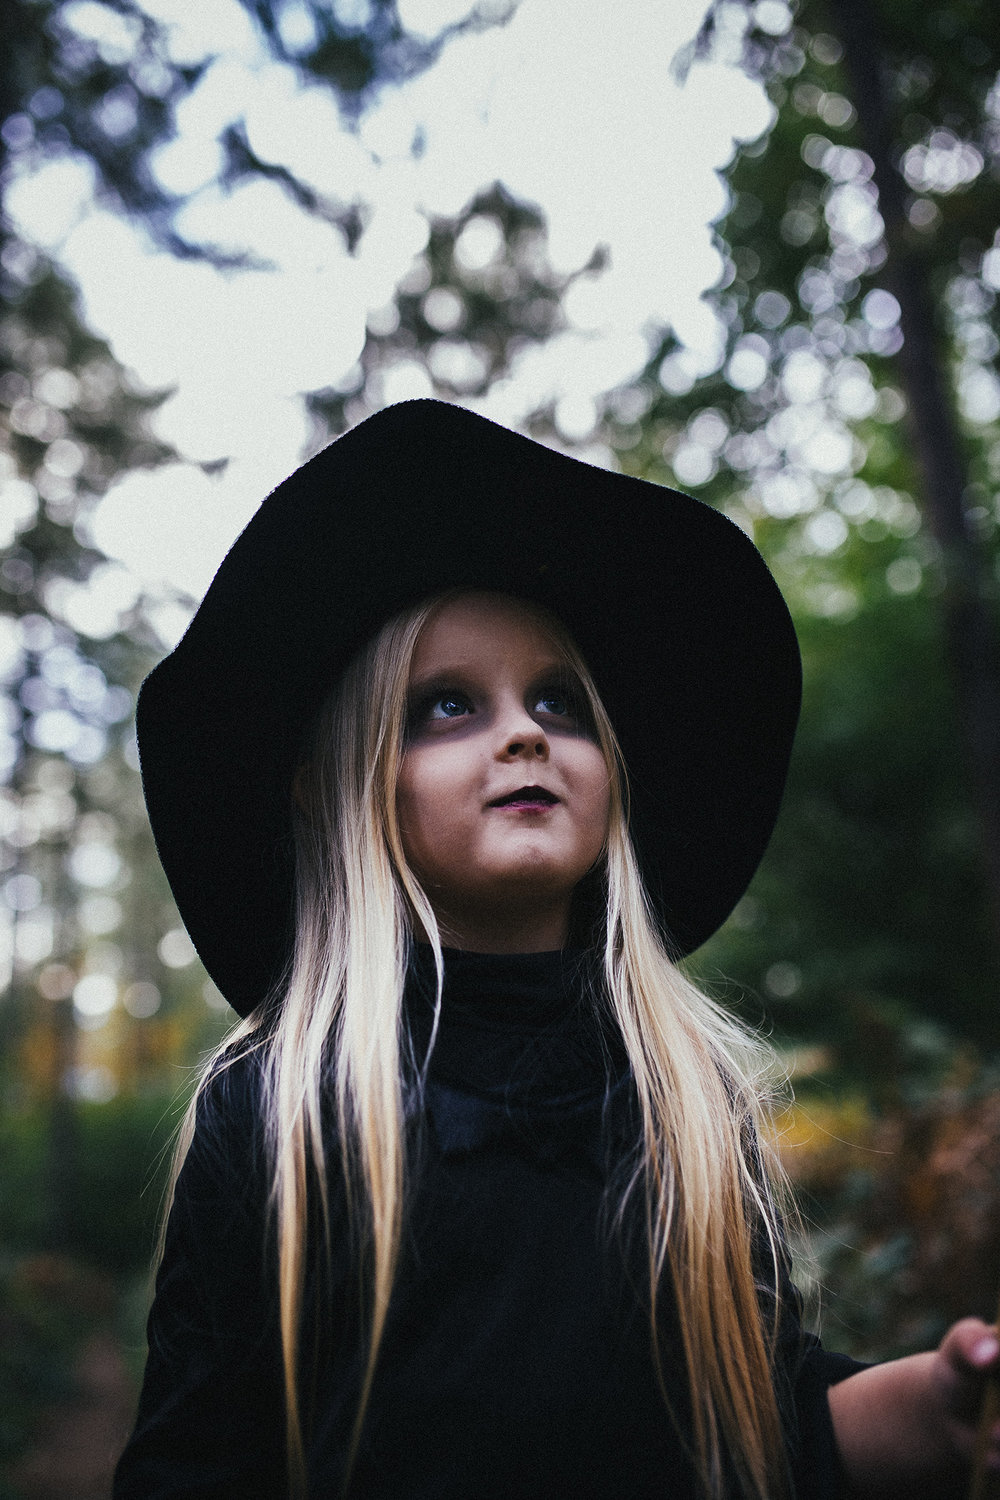 HALLOWEEN LITTLE WITCH RUTLAND PHOTOGRAPHER-44.jpg